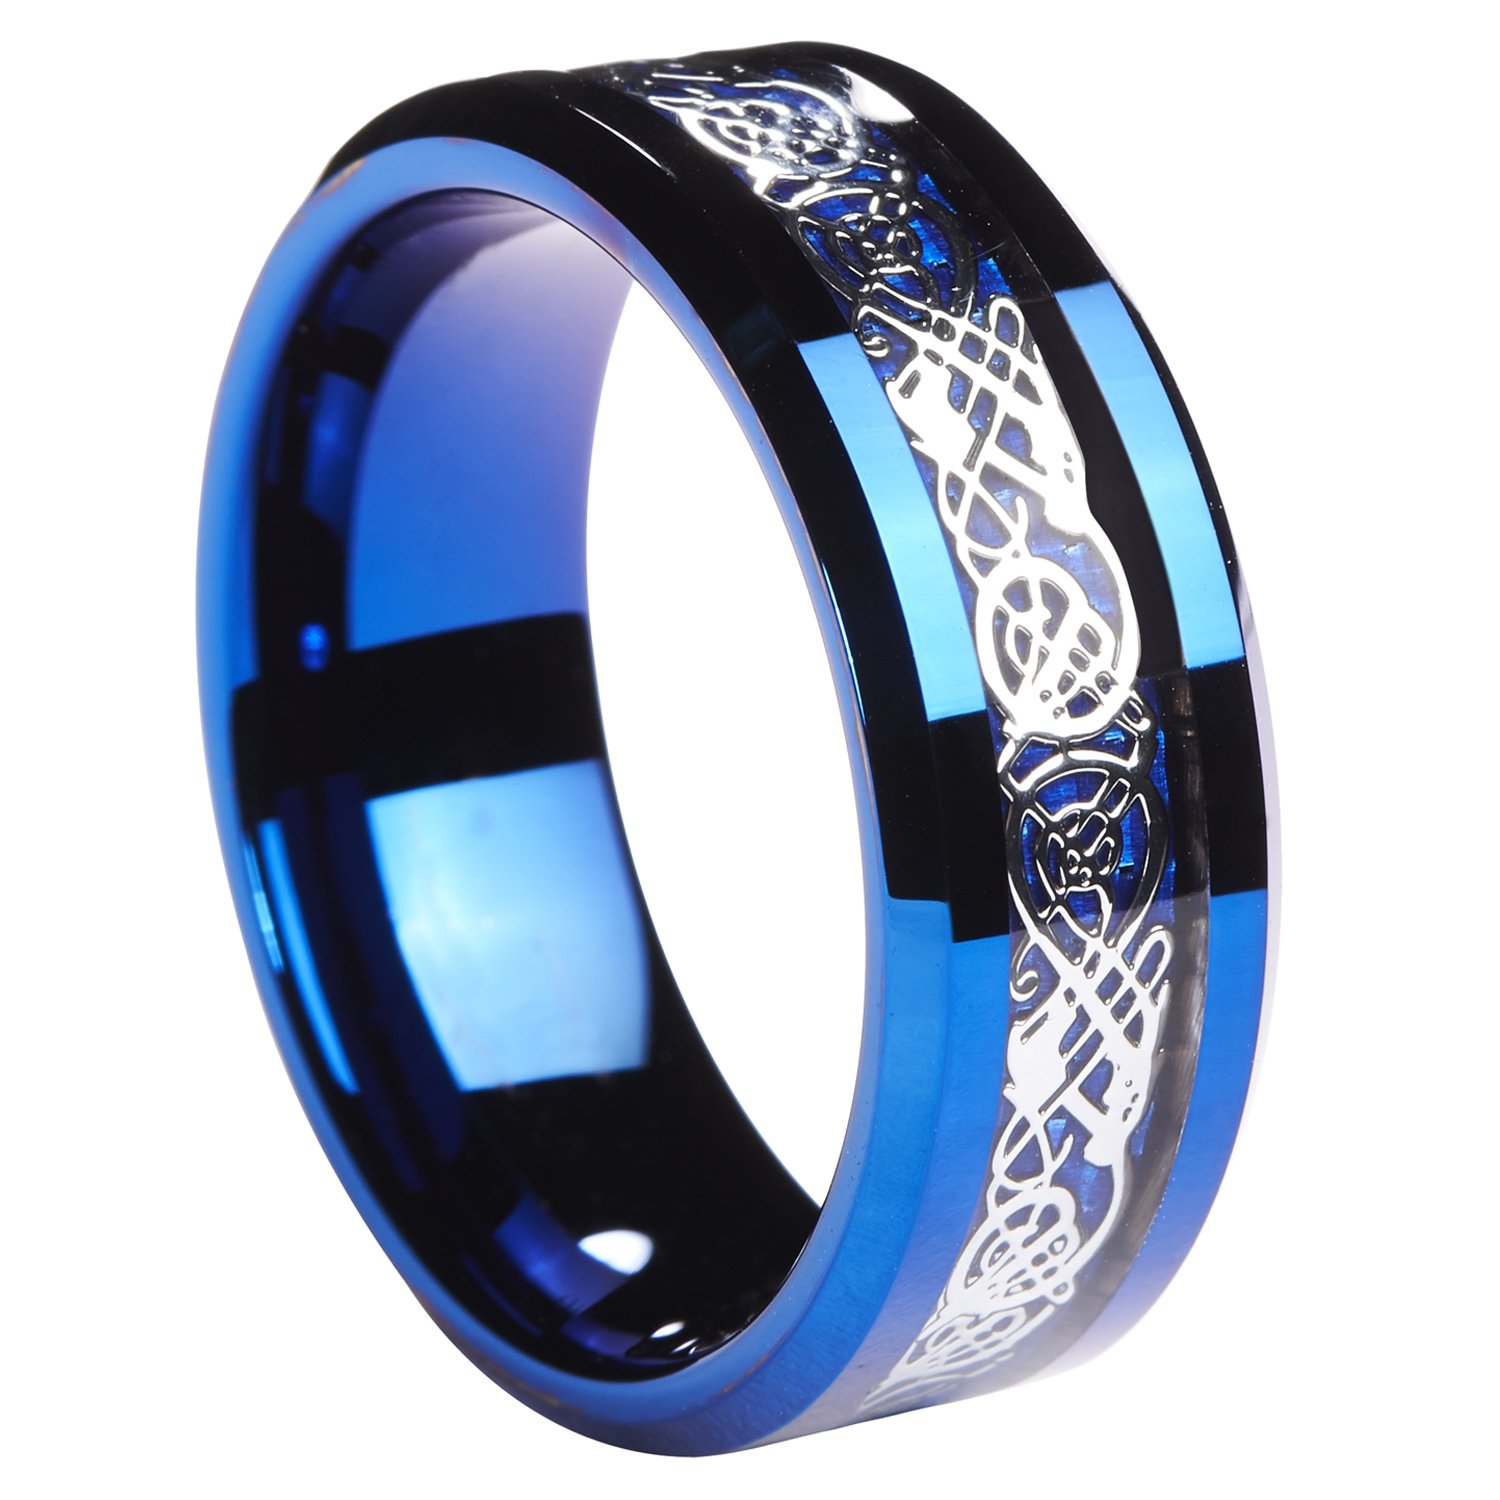 8mm Tungsten Carbide Ring Silvering Celtic Dragon Blue Carbon Fibre Inlay Wedding Band Size 6-13